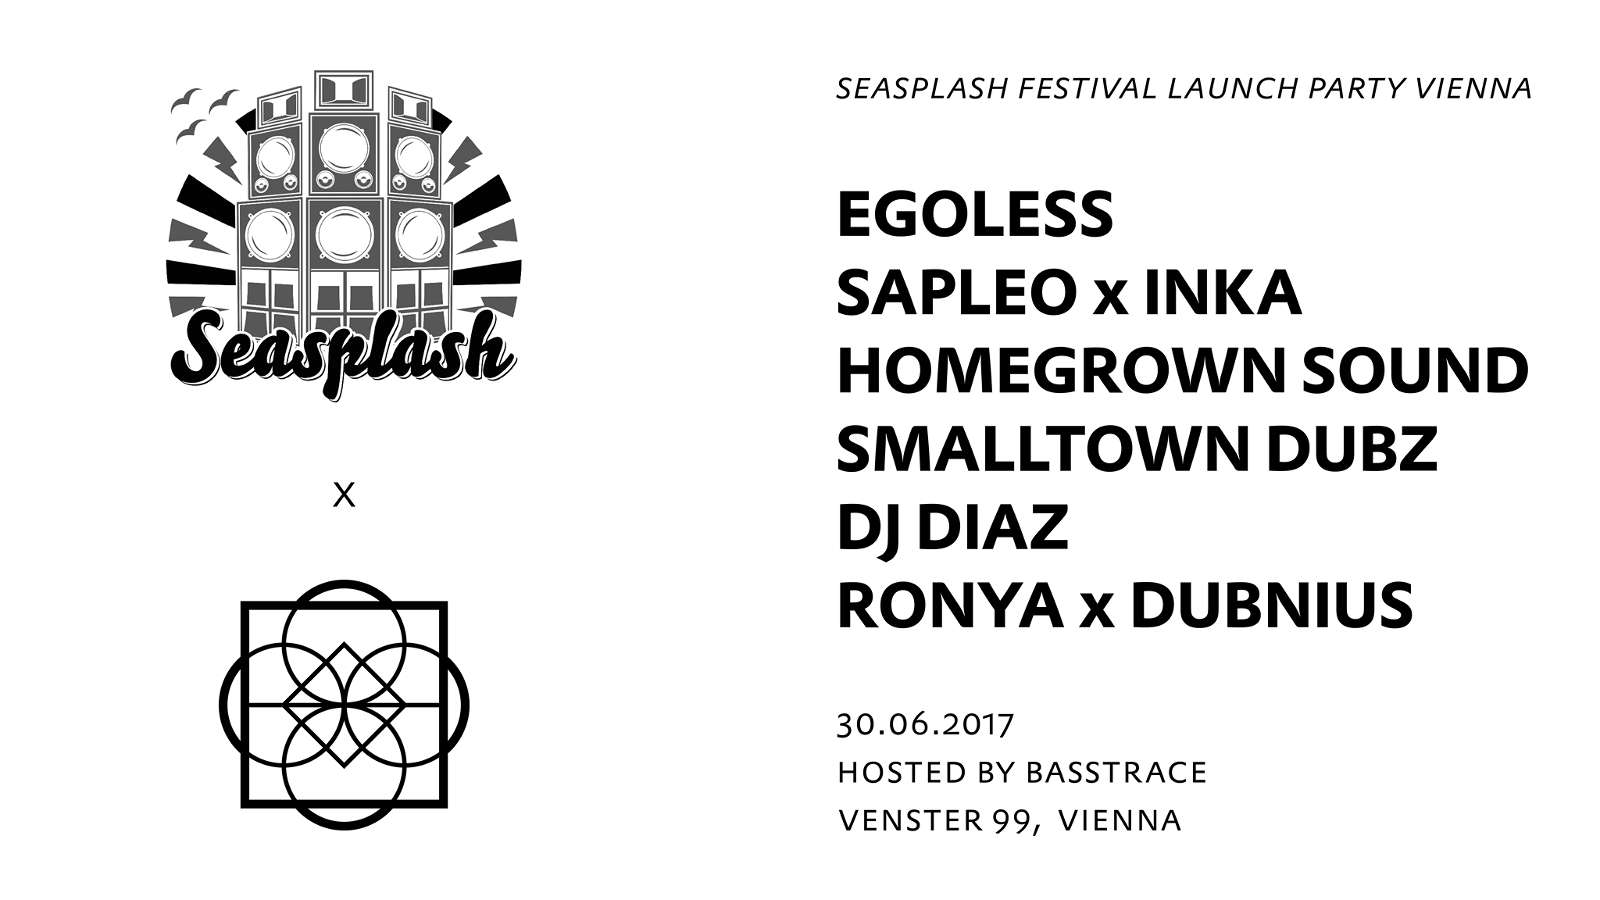 Basstrace pres. Seasplash Festival Launch Party Vienna